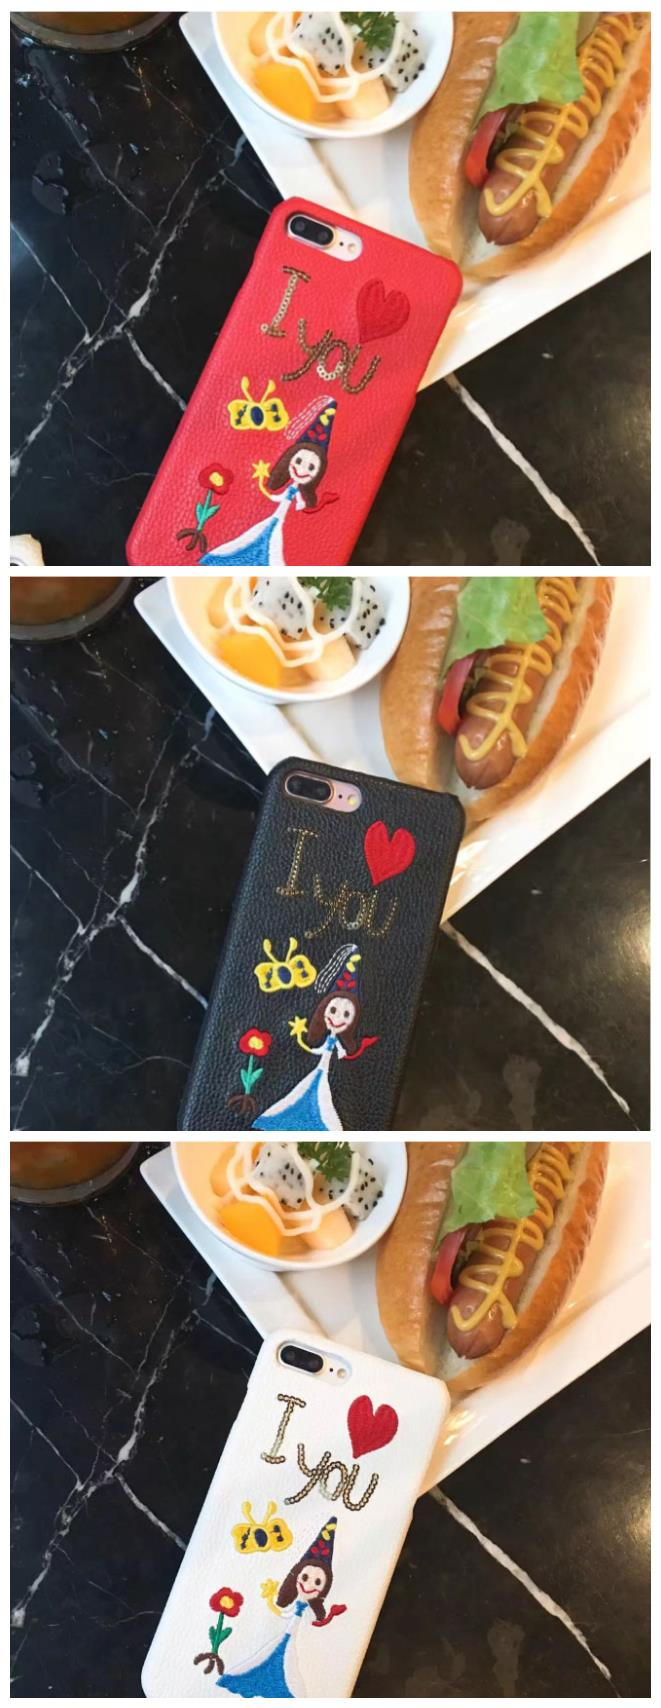 iPhone 6/6s/7 4.7'',6Plus/6sPlus/7 Plus 5.5'' Love U Leather Case